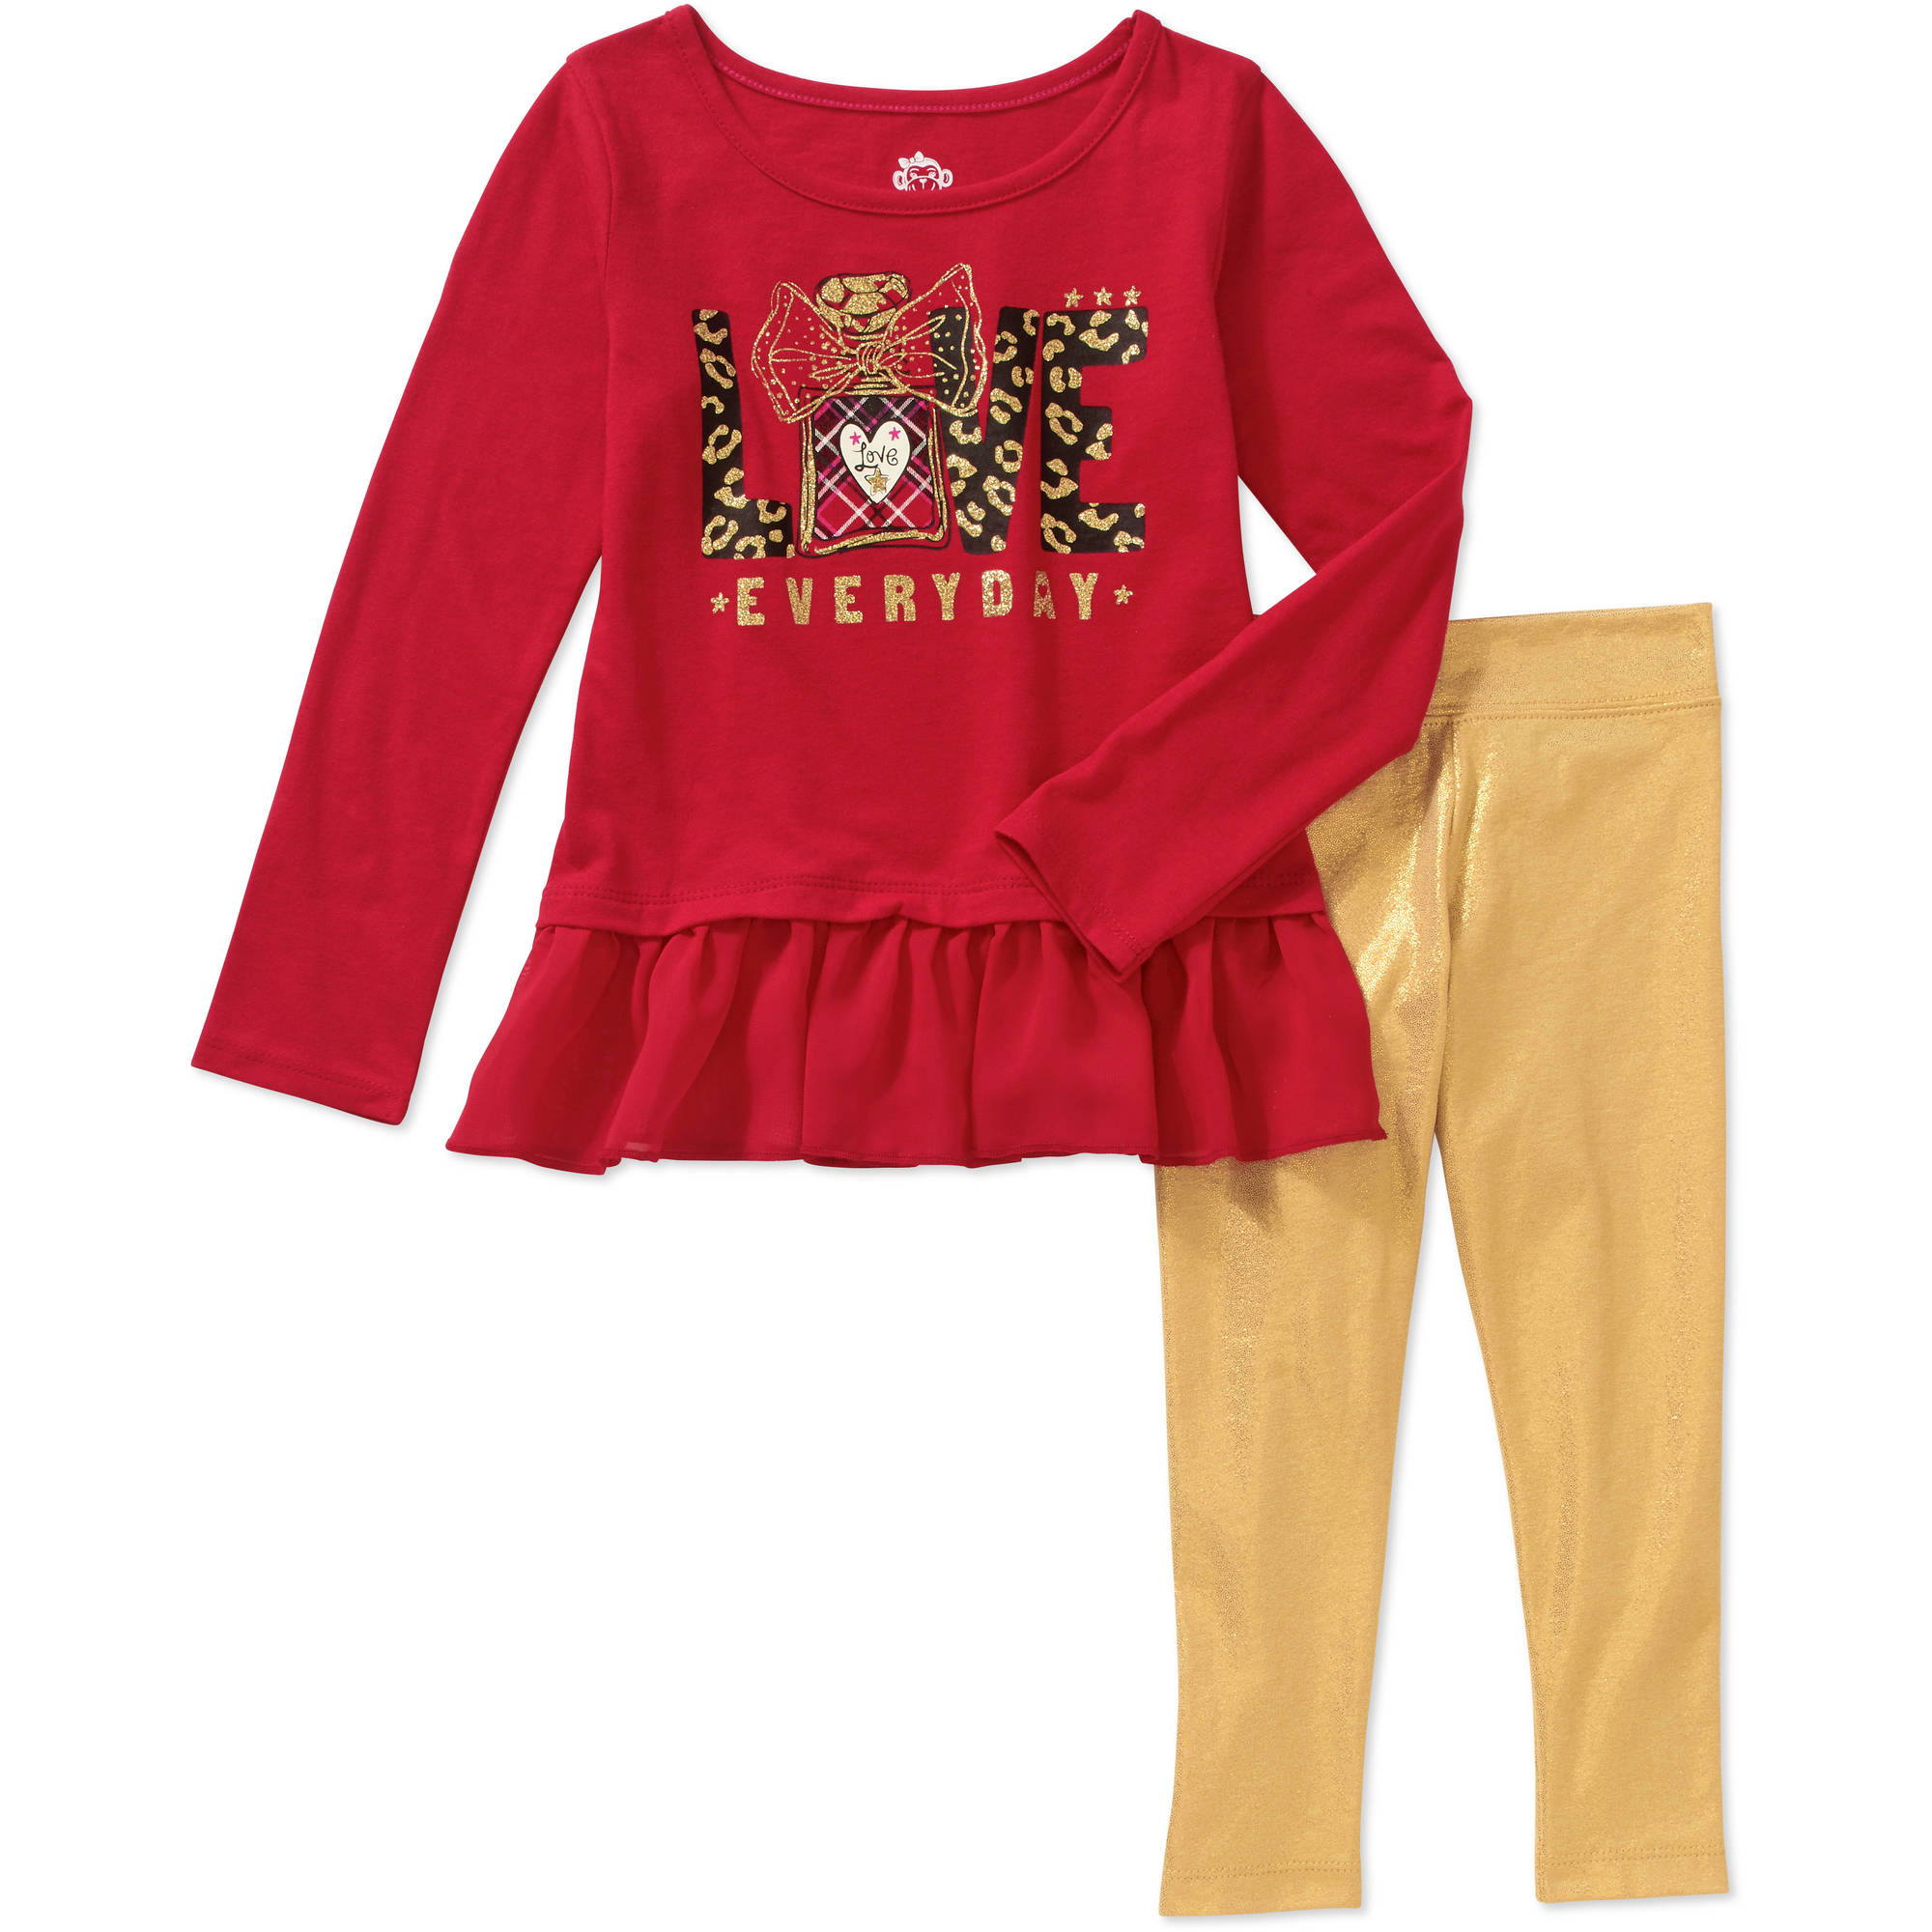 365 Kids from Garanimals Girls' Long Sleeve Graphic Chiffon Ruffle Tee and Shimmer Leggings Outfit Set